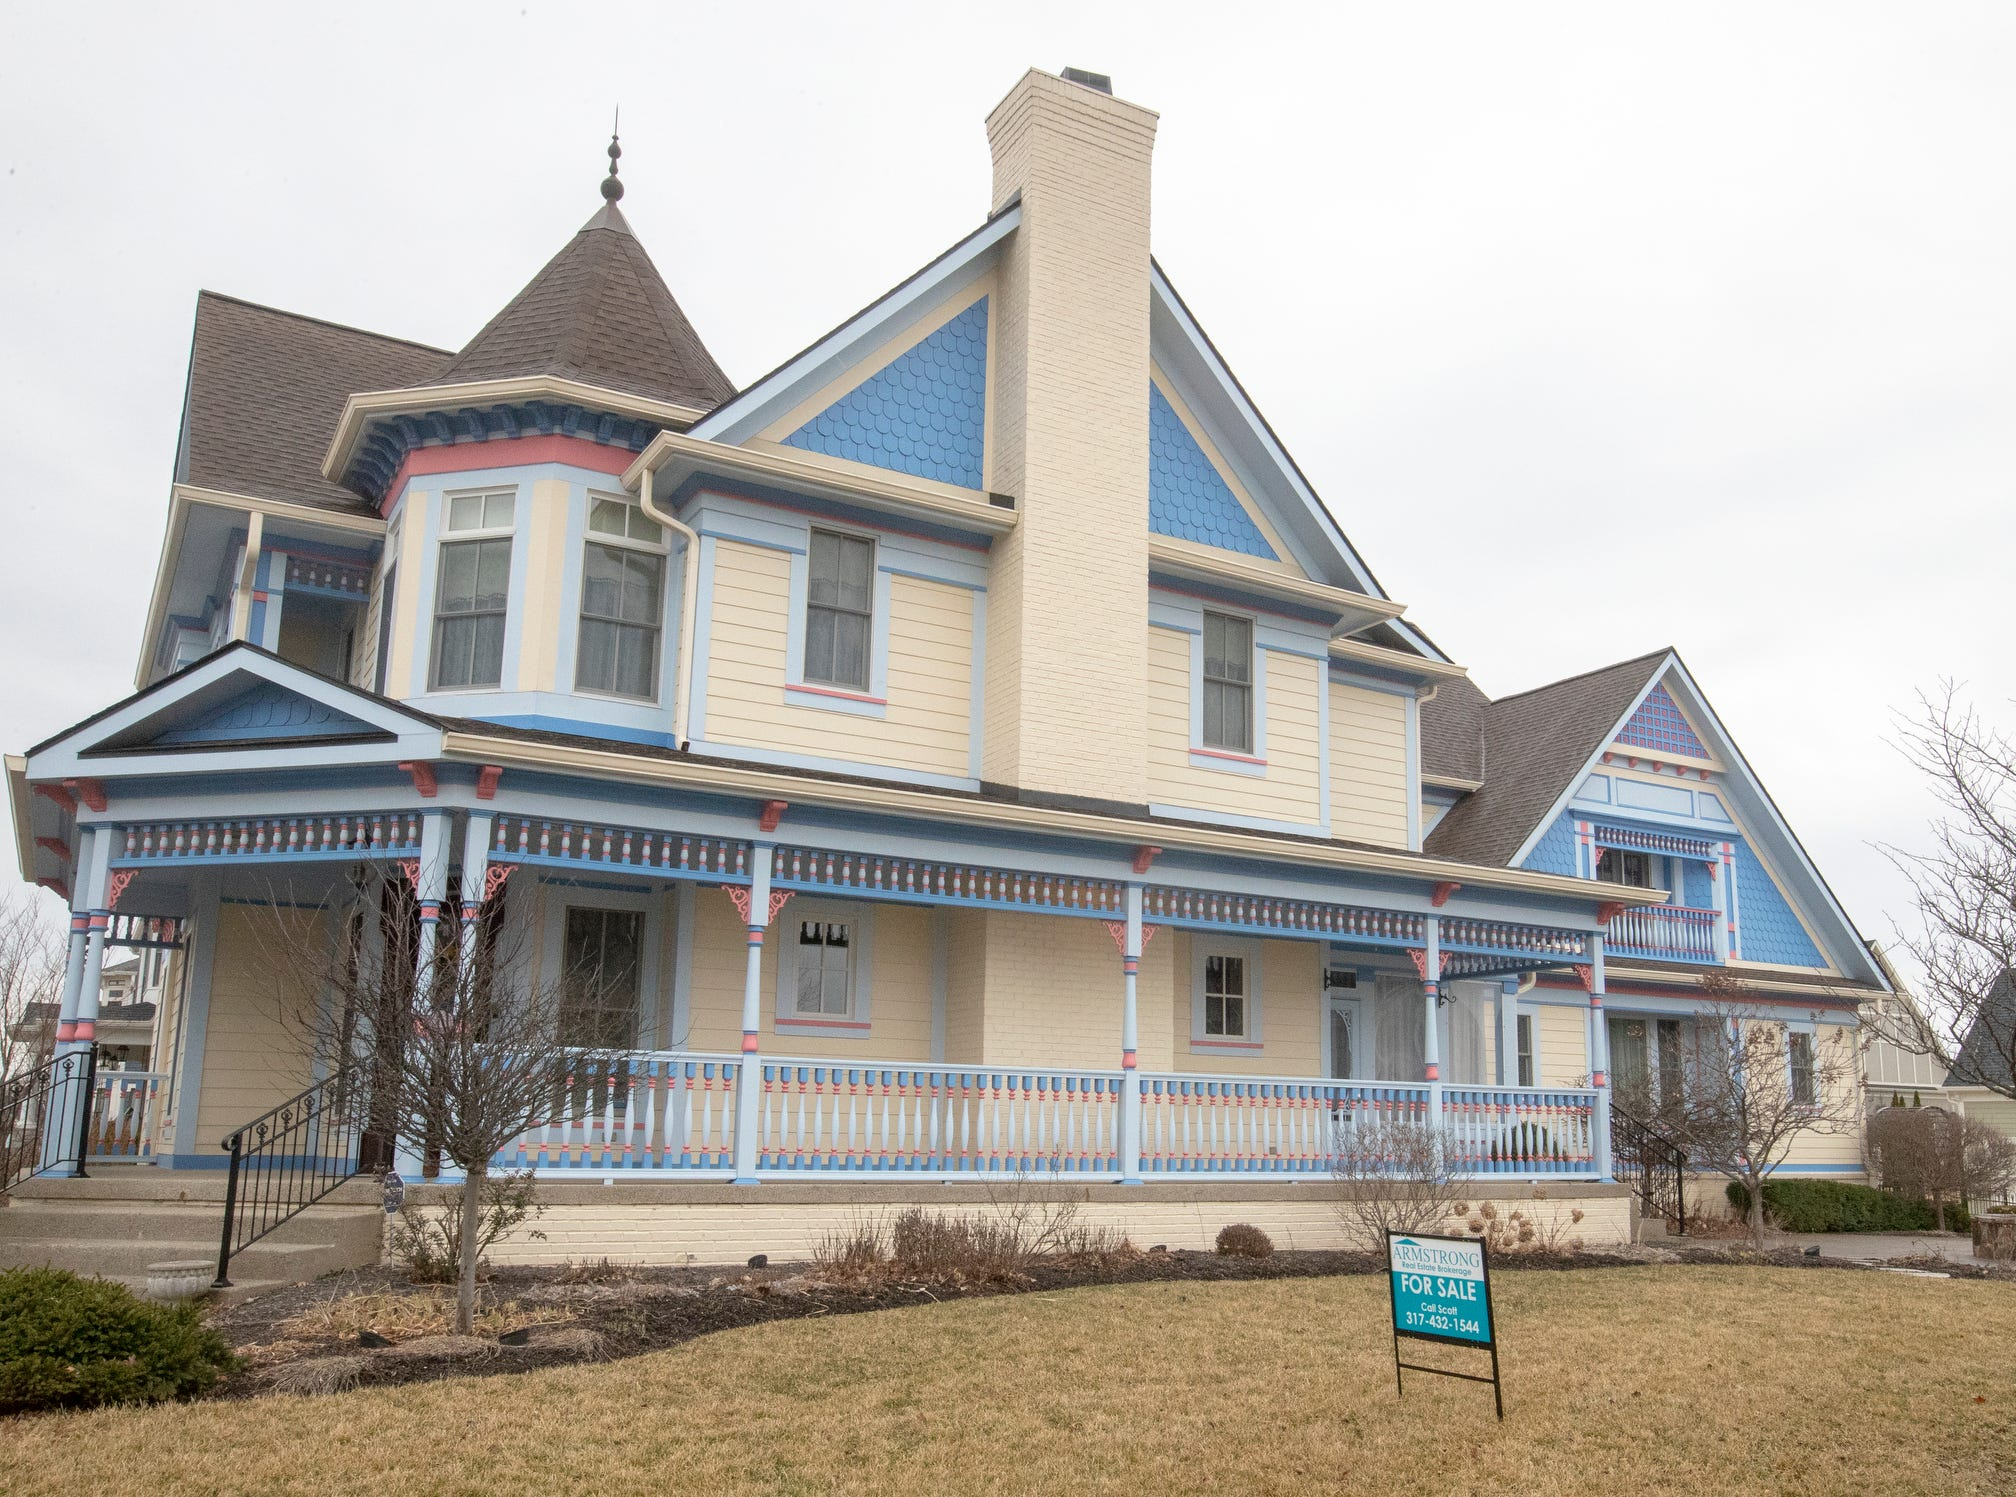 The outside of a thirteen-year-old Victorian home in the Village of West Clay, Carmel, March 20, 2019. The house includes 16 rooms with five bedrooms, 8,348 square feet, and is listed at $1.275 million.